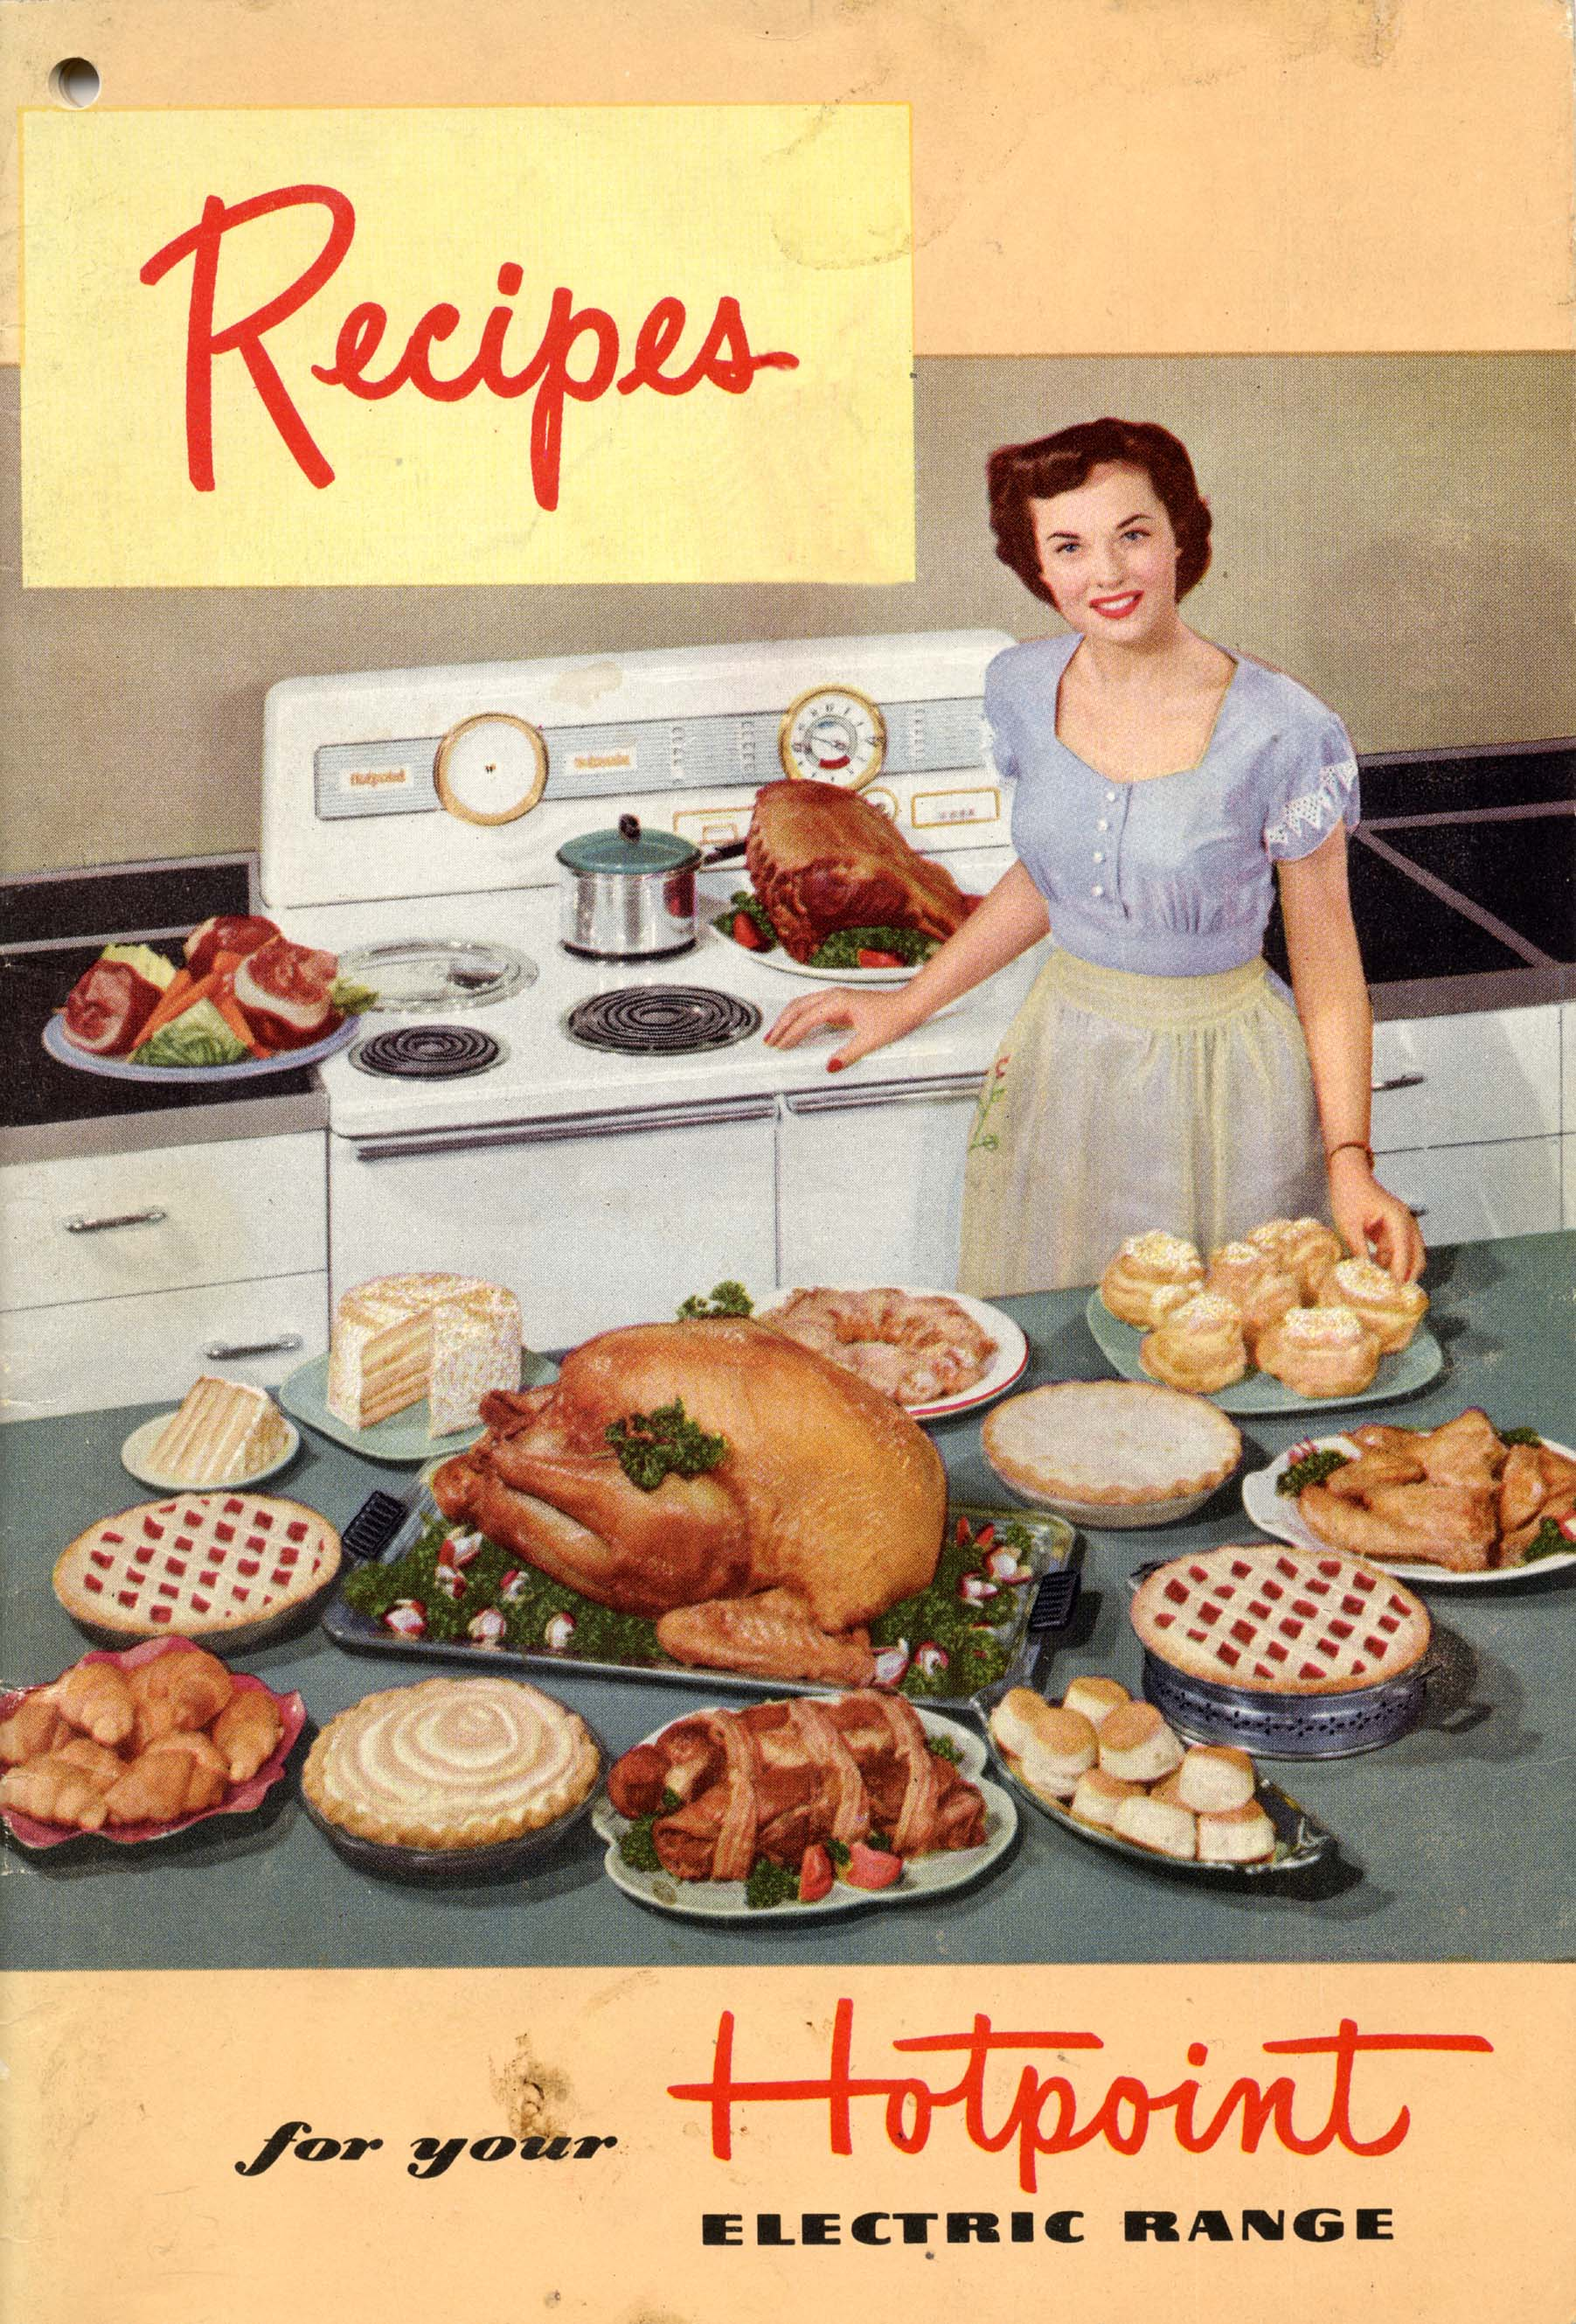 recipes-for-your-hotpoint-electric-range.jpg